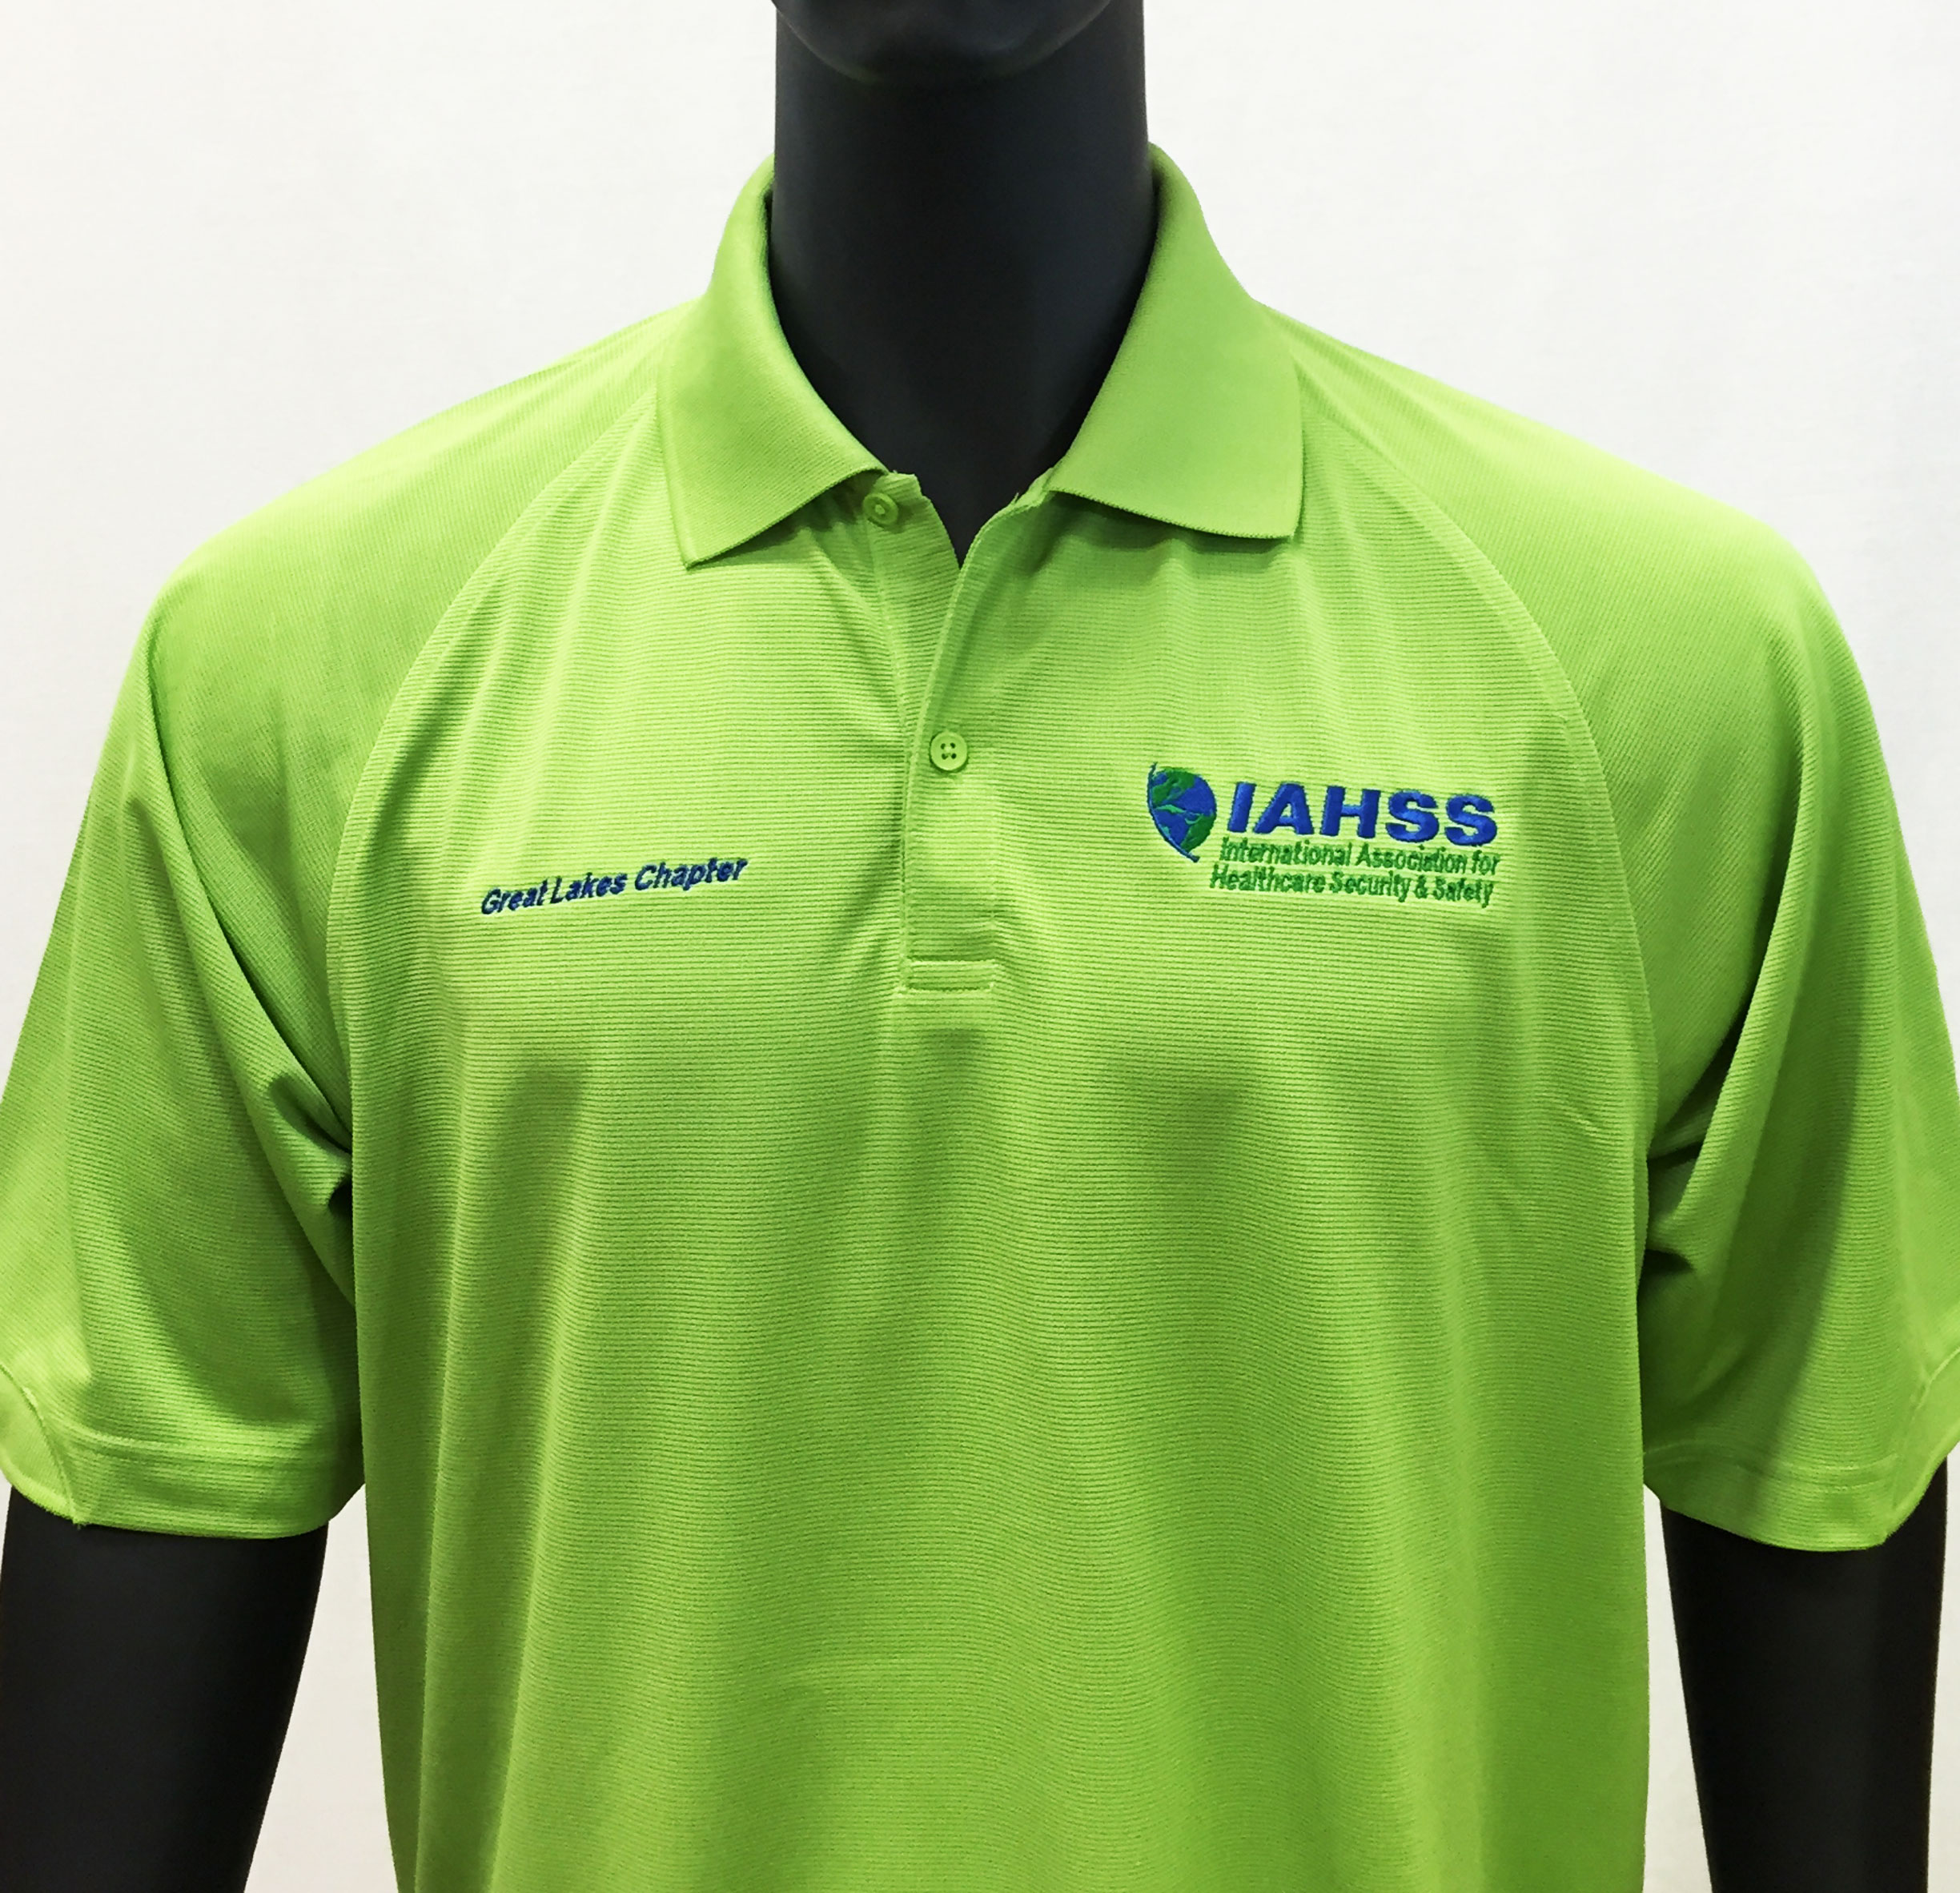 CPASK525 Men's Port Authority Dry Zone Ottoman Sport Shirt, Green Oasis with IAHSS Great Lakes Chapter Embroidery, XS-6X